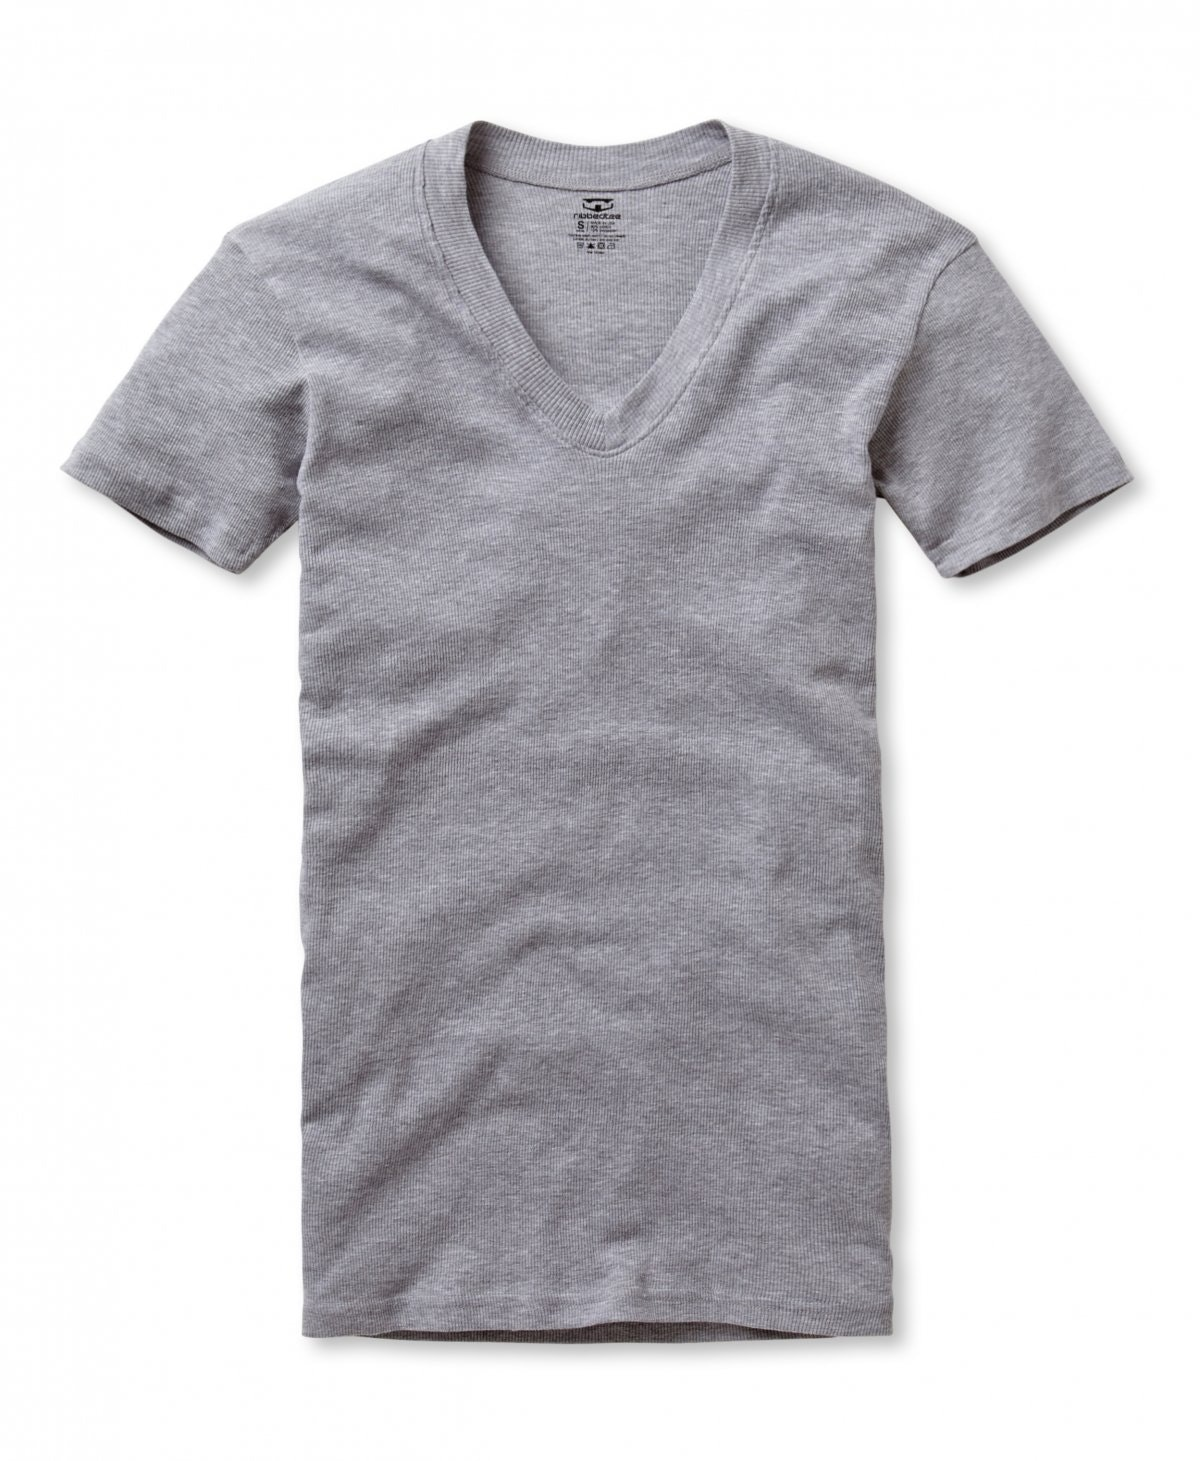 Men's V-Neck Undershirts | Classic Fit | 2-Pack | RibbedTee